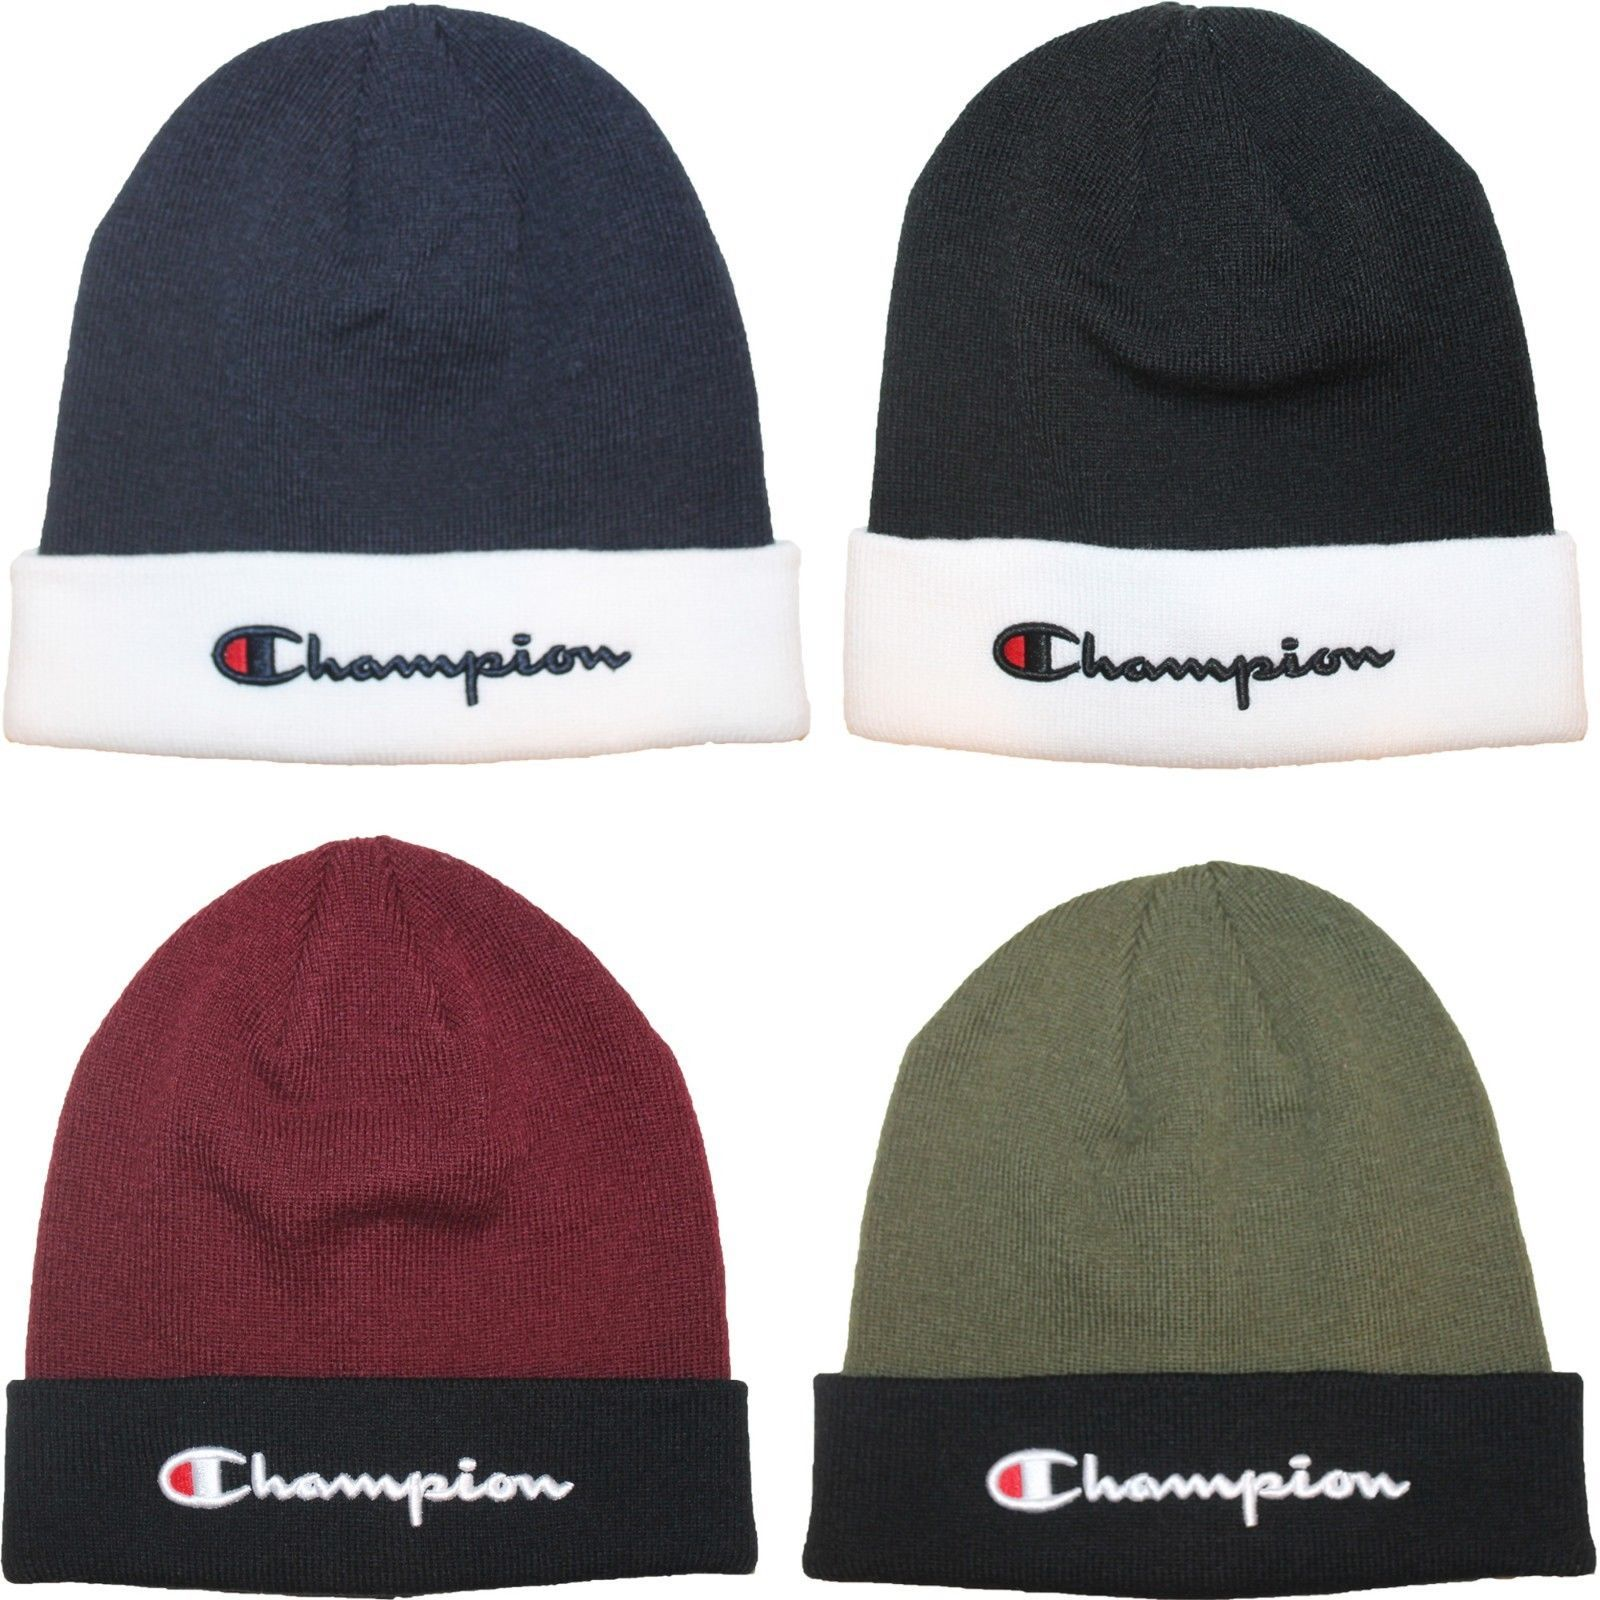 a9757976d8d Hats 163543  Champion Script Logo Two Tone Beanie Skull Skully Cap Hat One  Size Fits Most -  BUY IT NOW ONLY   19.9 on  eBay  champion  script  beanie  ...